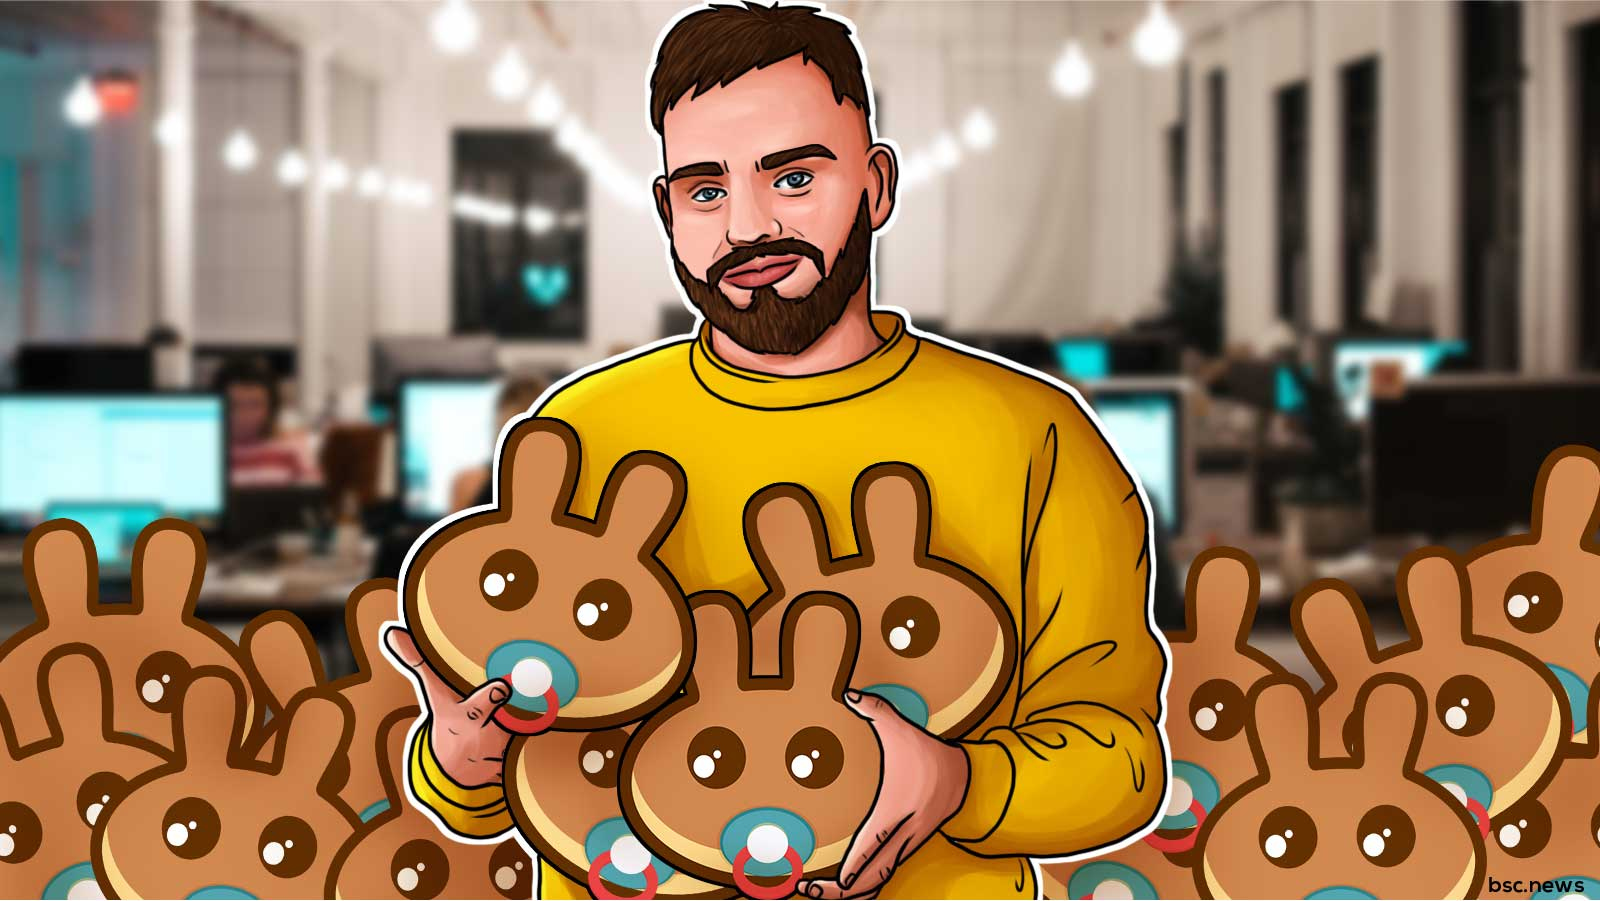 BabyCake Exposes Users to Extreme Rewards at the Expense of Massive Volatility